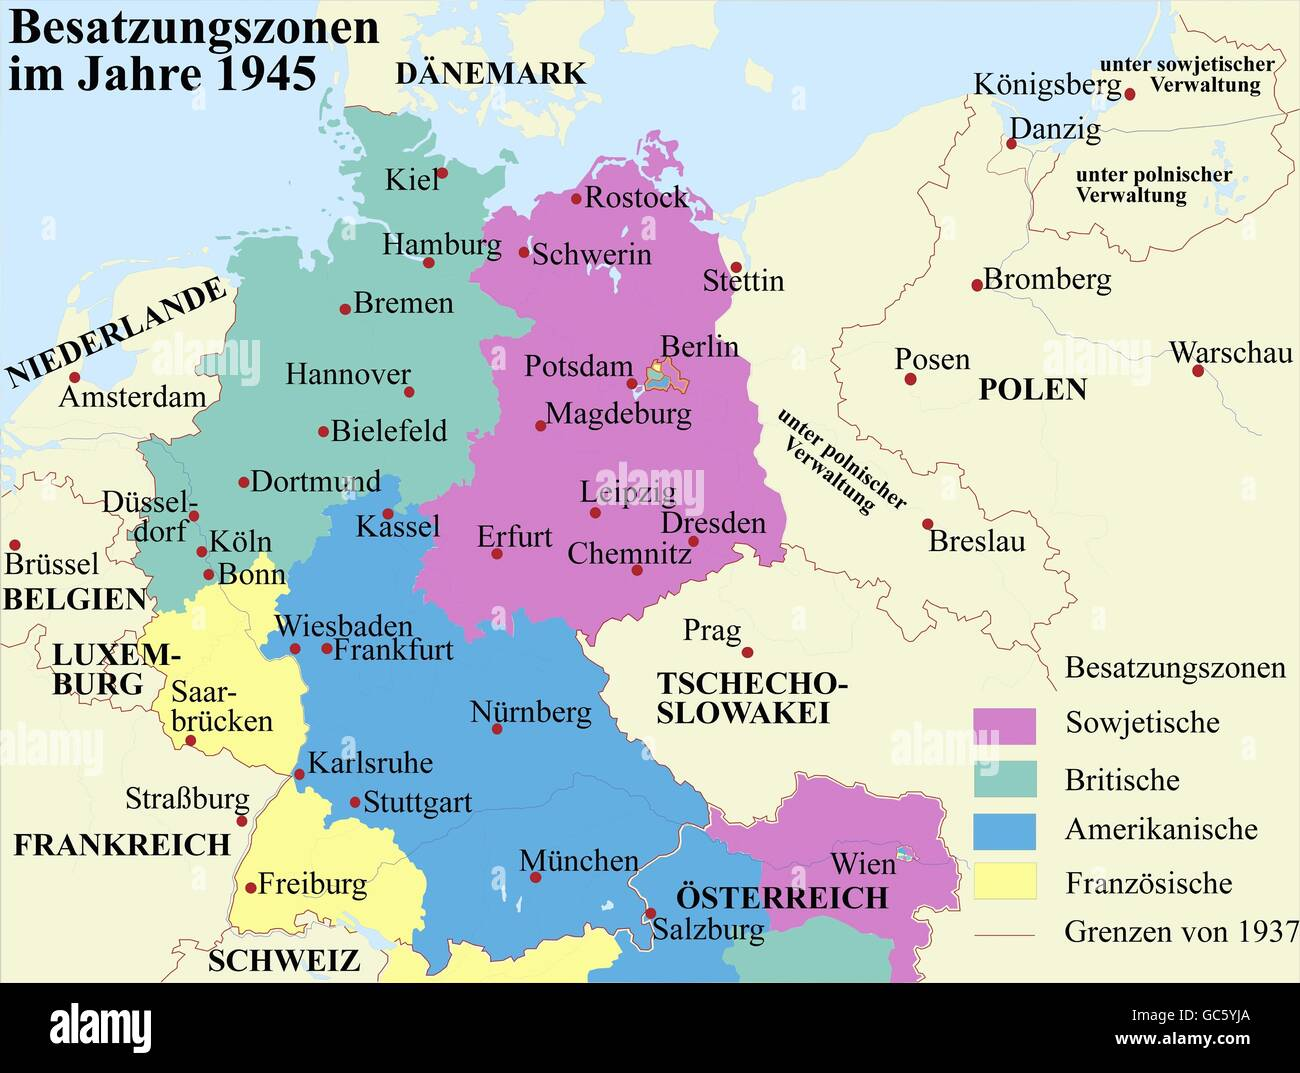 Cartography Historical Maps Modern Times Germany And Austria - Germany map zones